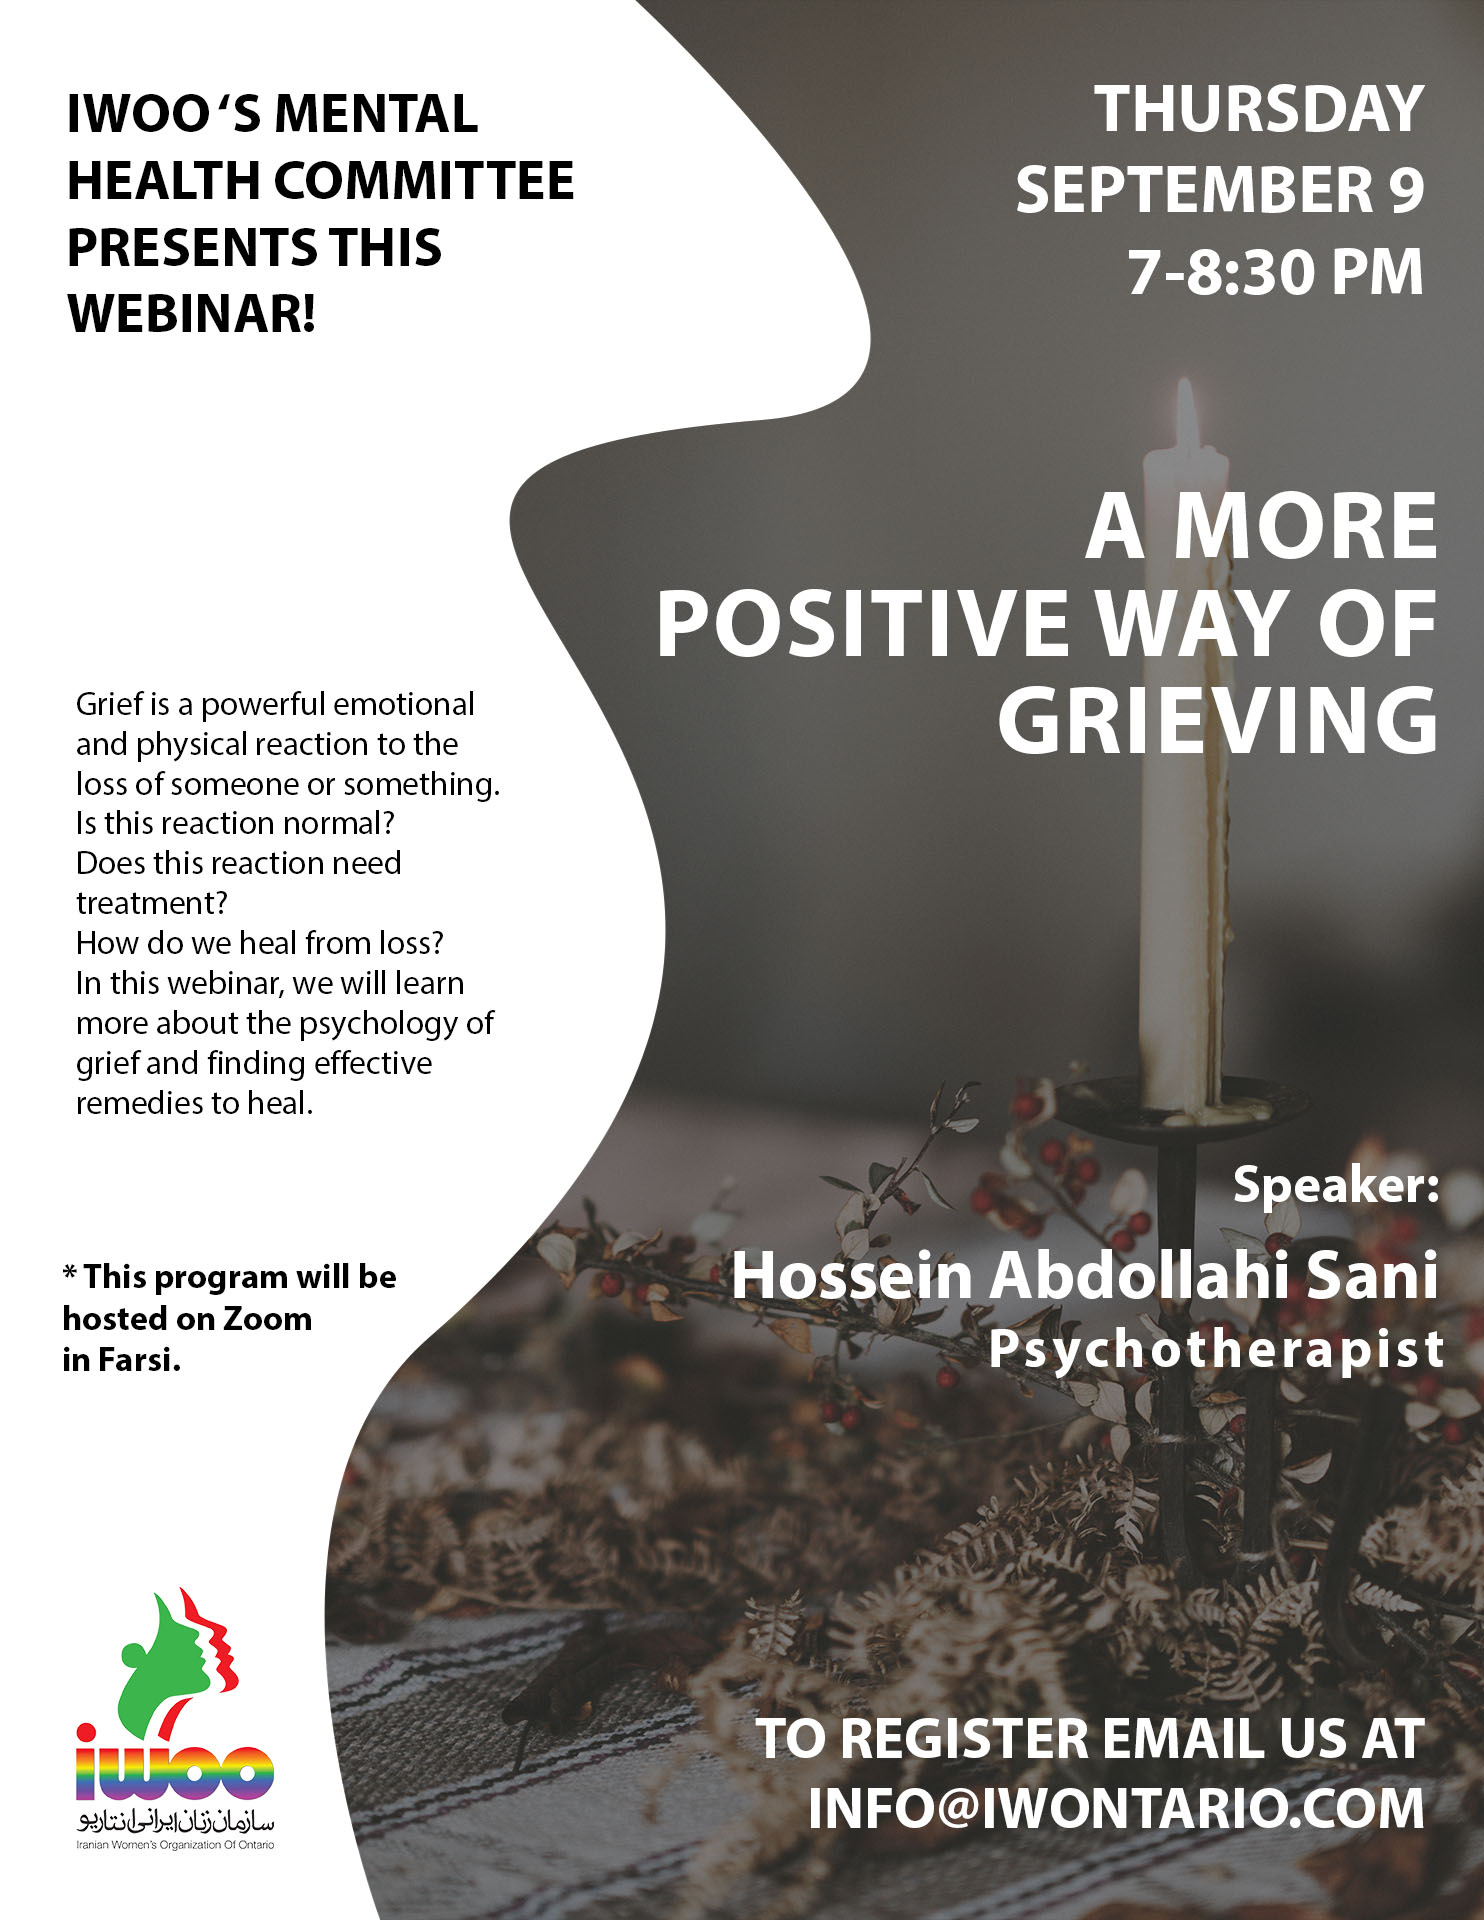 A More Positive Way Of Grieving!